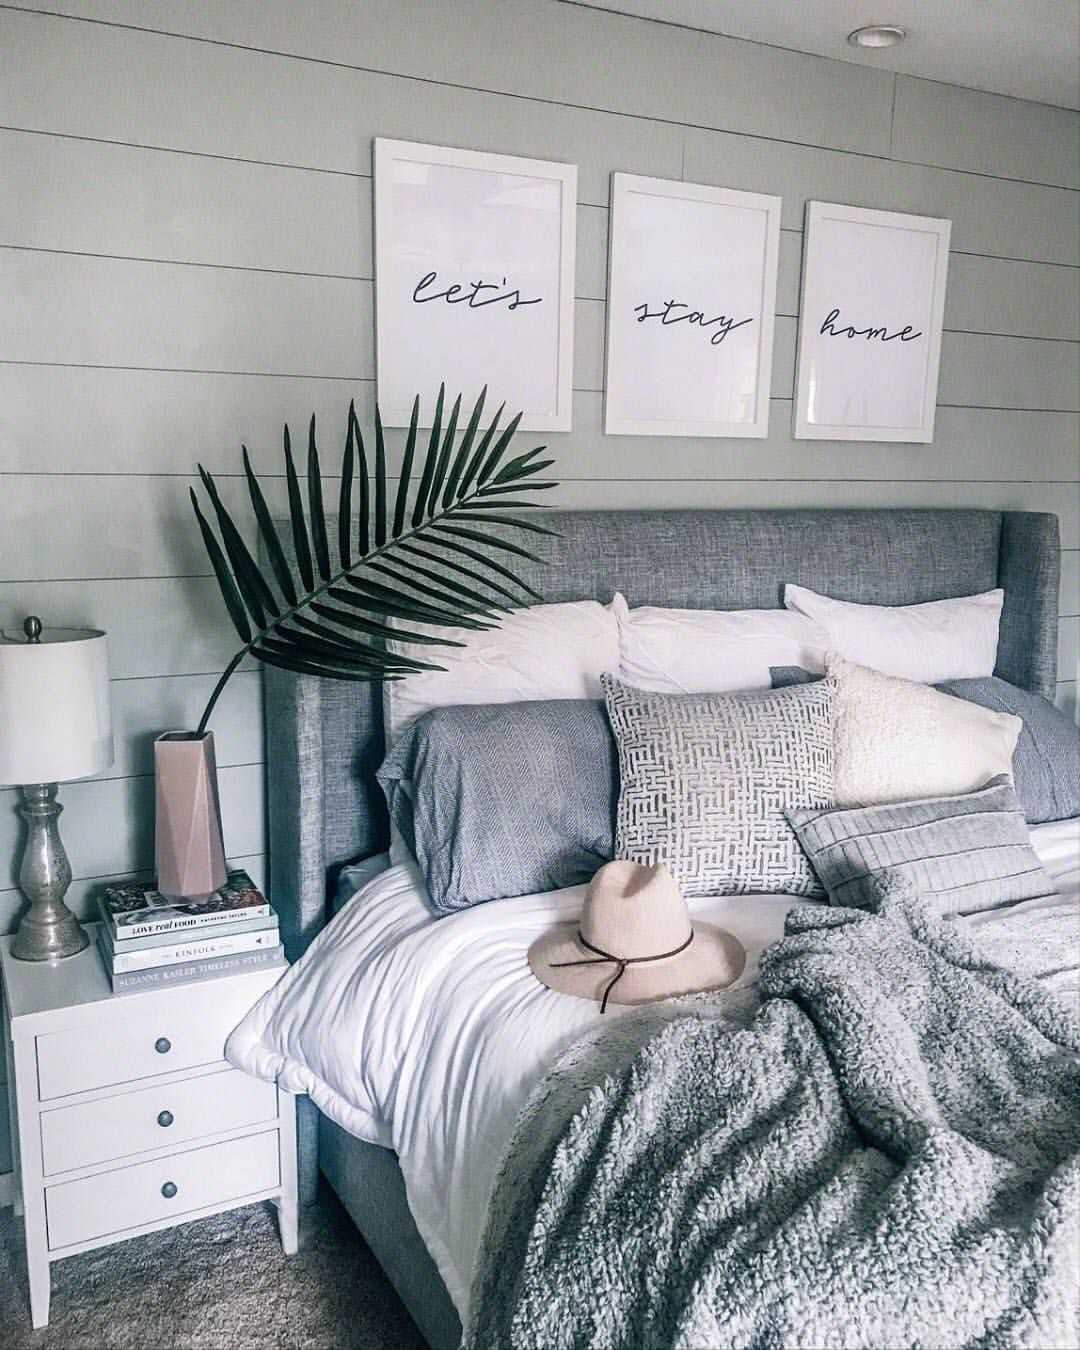 grey white cozy bedroom decor let s stay home haven t on modern cozy bedroom decorating ideas id=98054